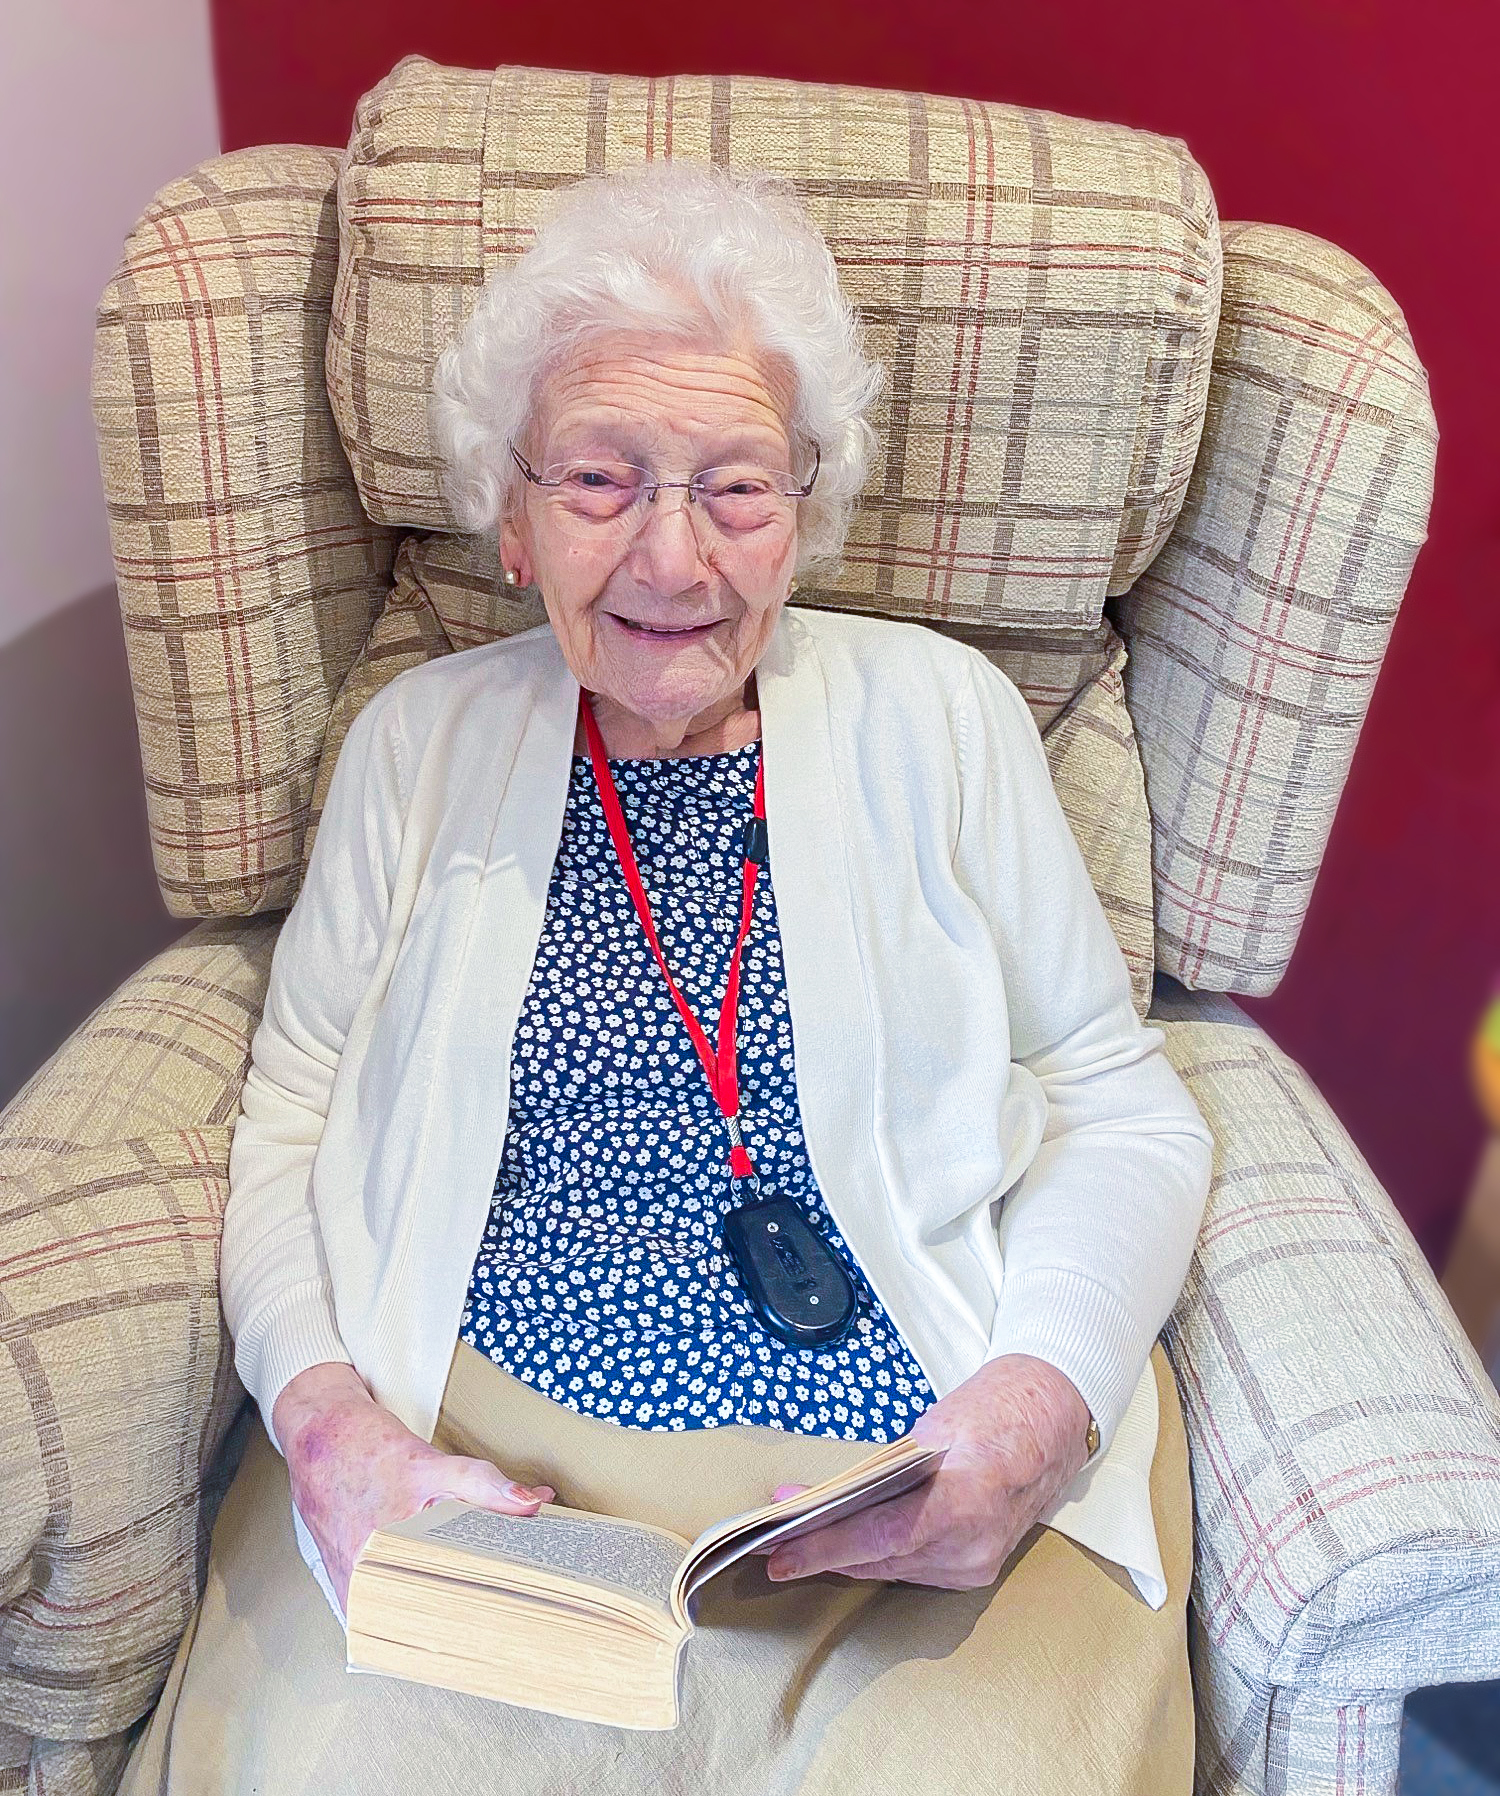 Woking care home resident Sheila sat in her favourite arm chair, smiling at the camera with a book in her hands.